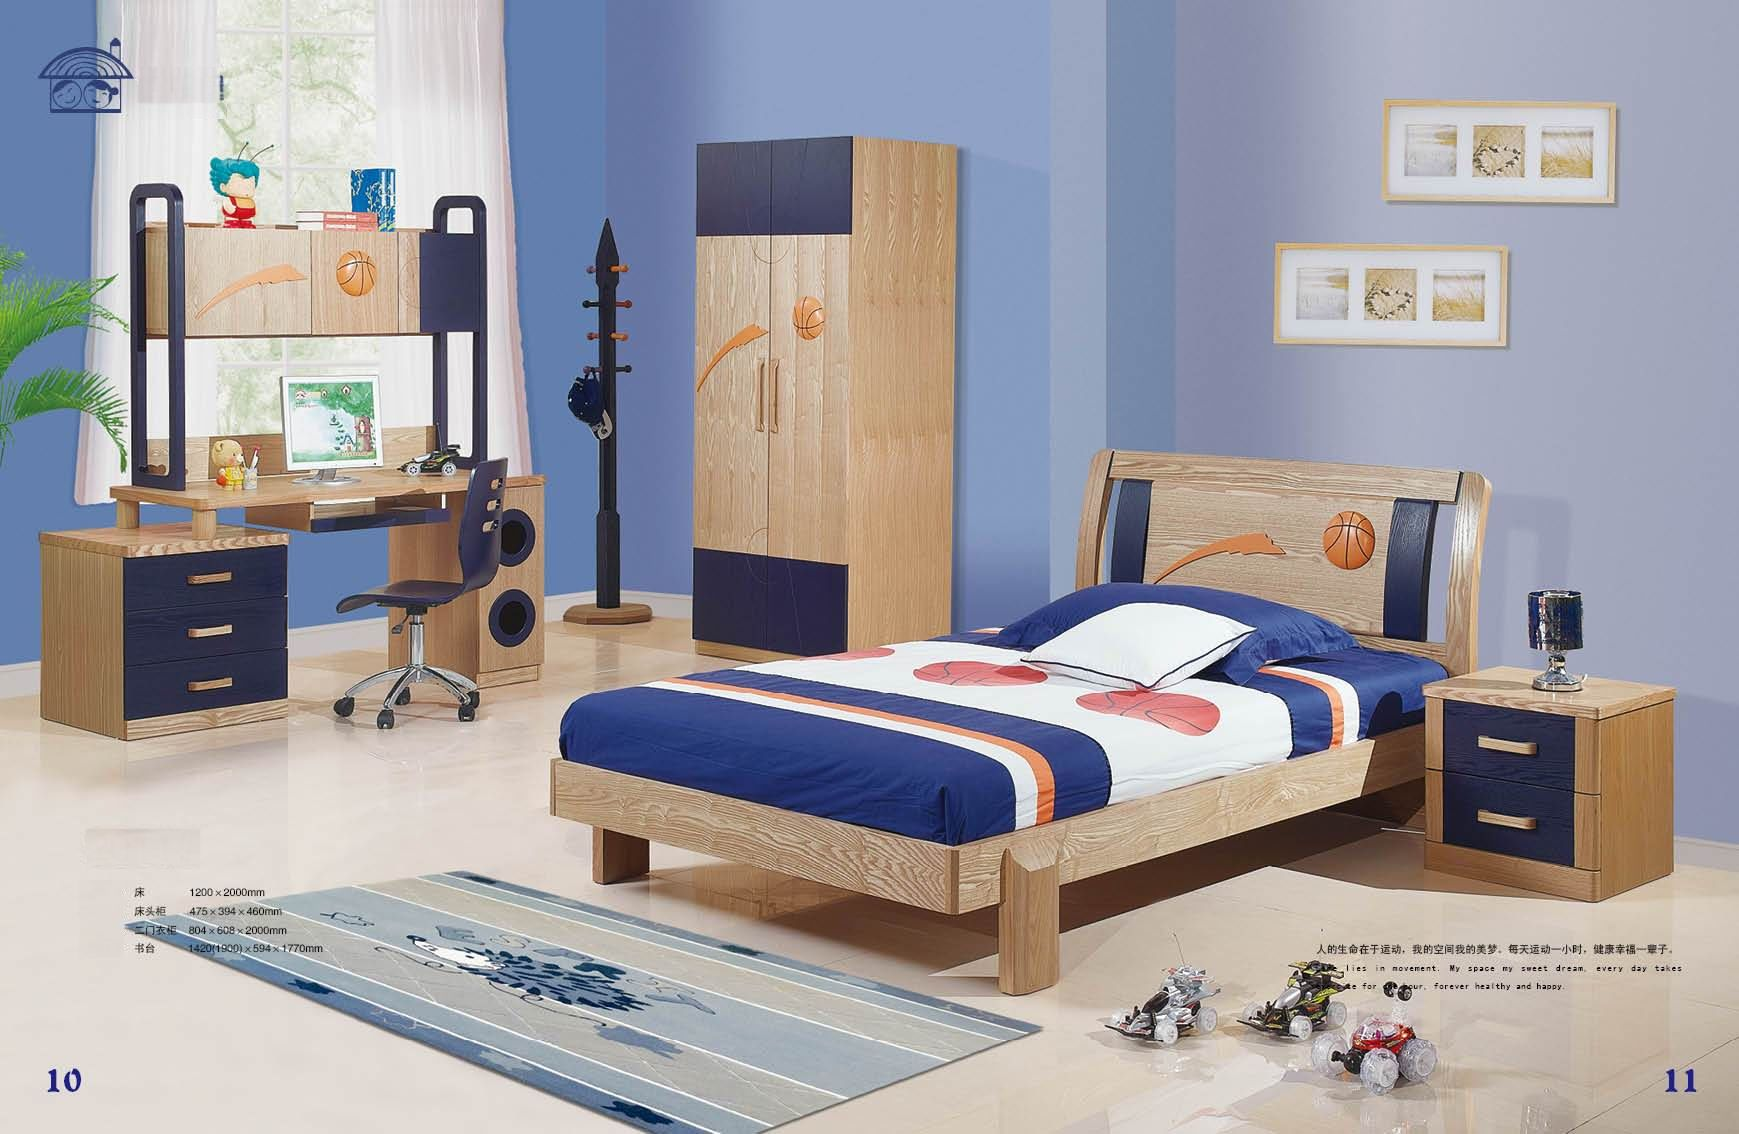 Kids Room  amazing design of the Kids Bedroom Furniture for single blue bedding  set with wooden bed frame the study space in the corner part. Youth Bedroom Furniture   Kids Bedroom Set  JKD 20120     China